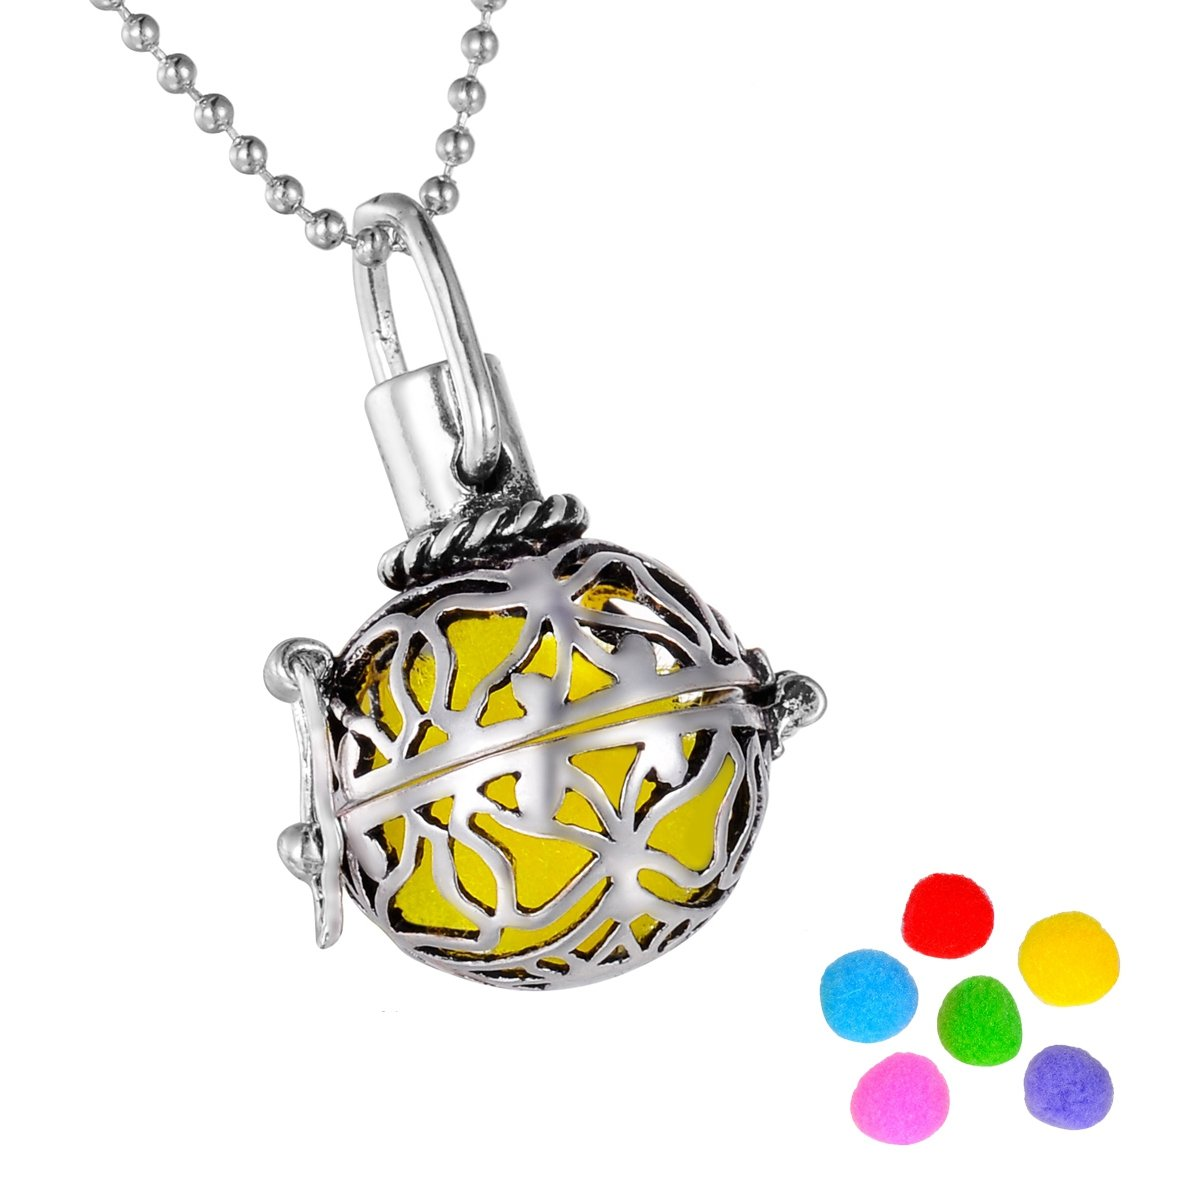 HooAMI Butterfly Aromatherapy Essential Oil Diffuser Necklace Pendant Magical Box Locket Jewelry